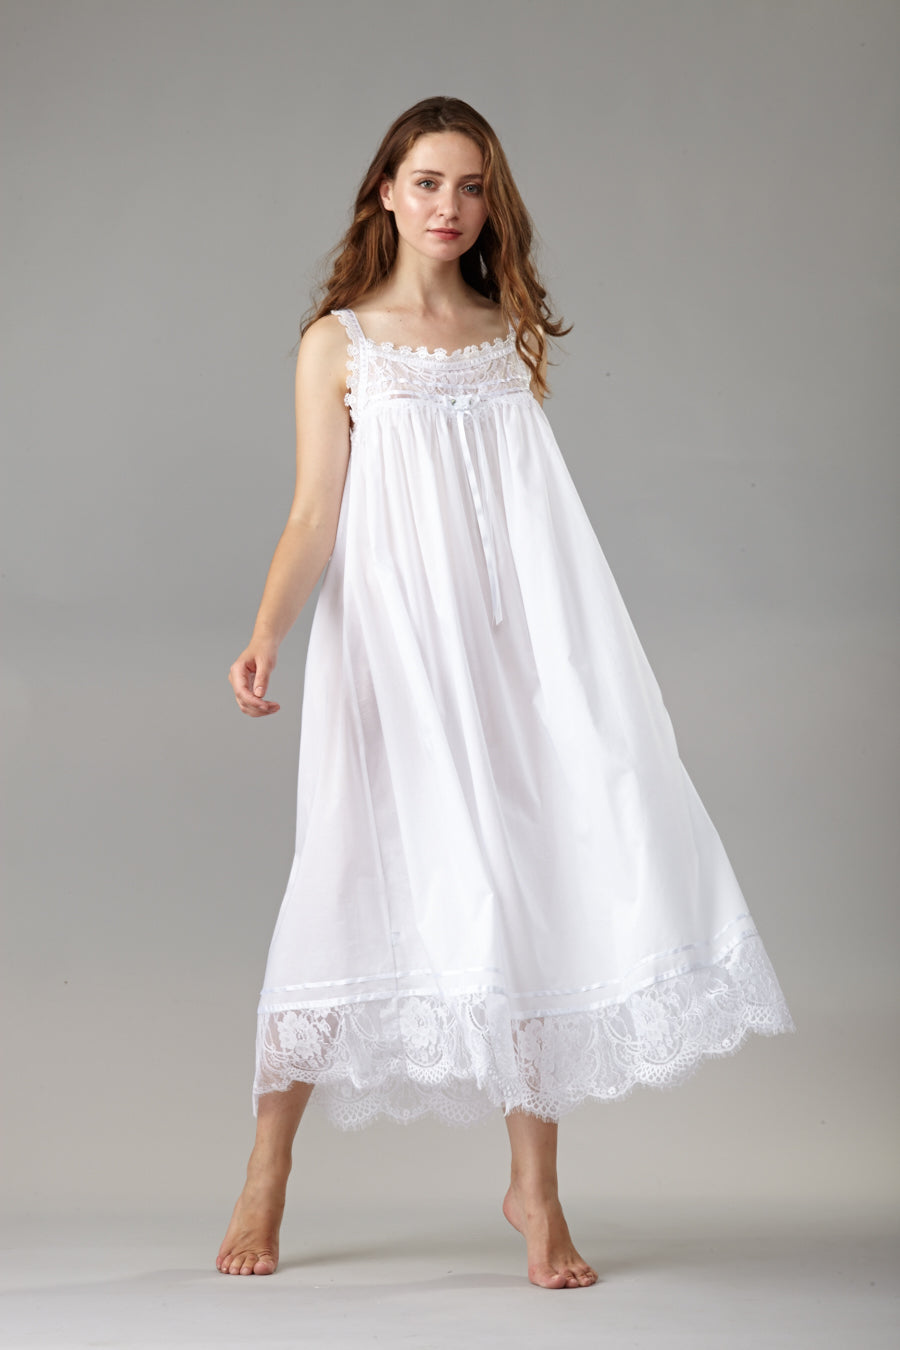 39612 - Long gown / 39613 - Short gown